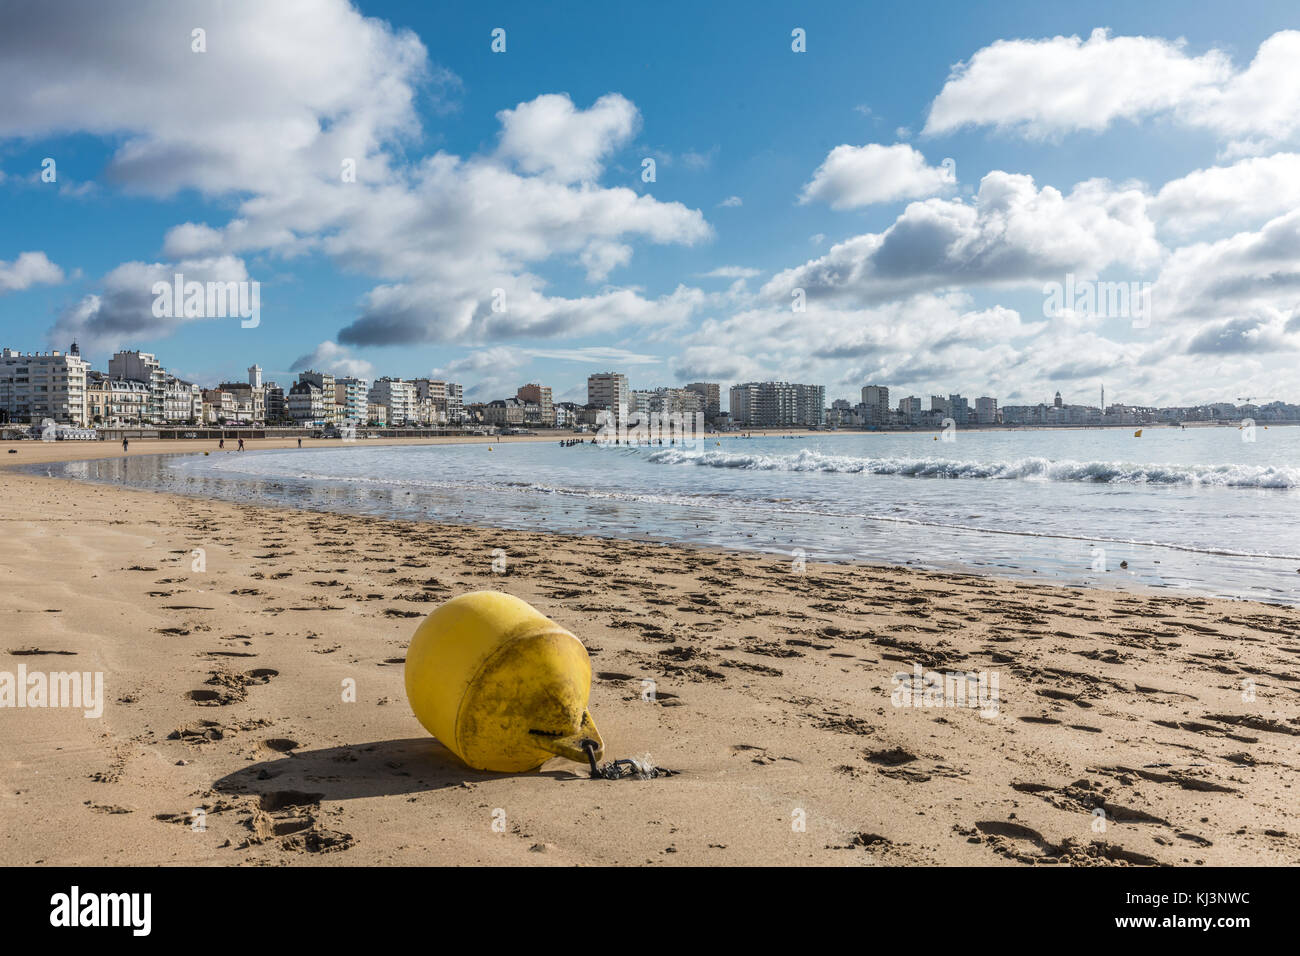 Les Sables d'Olonne beach at low tide with a yellow buoy (Vendee, France) Stock Photo